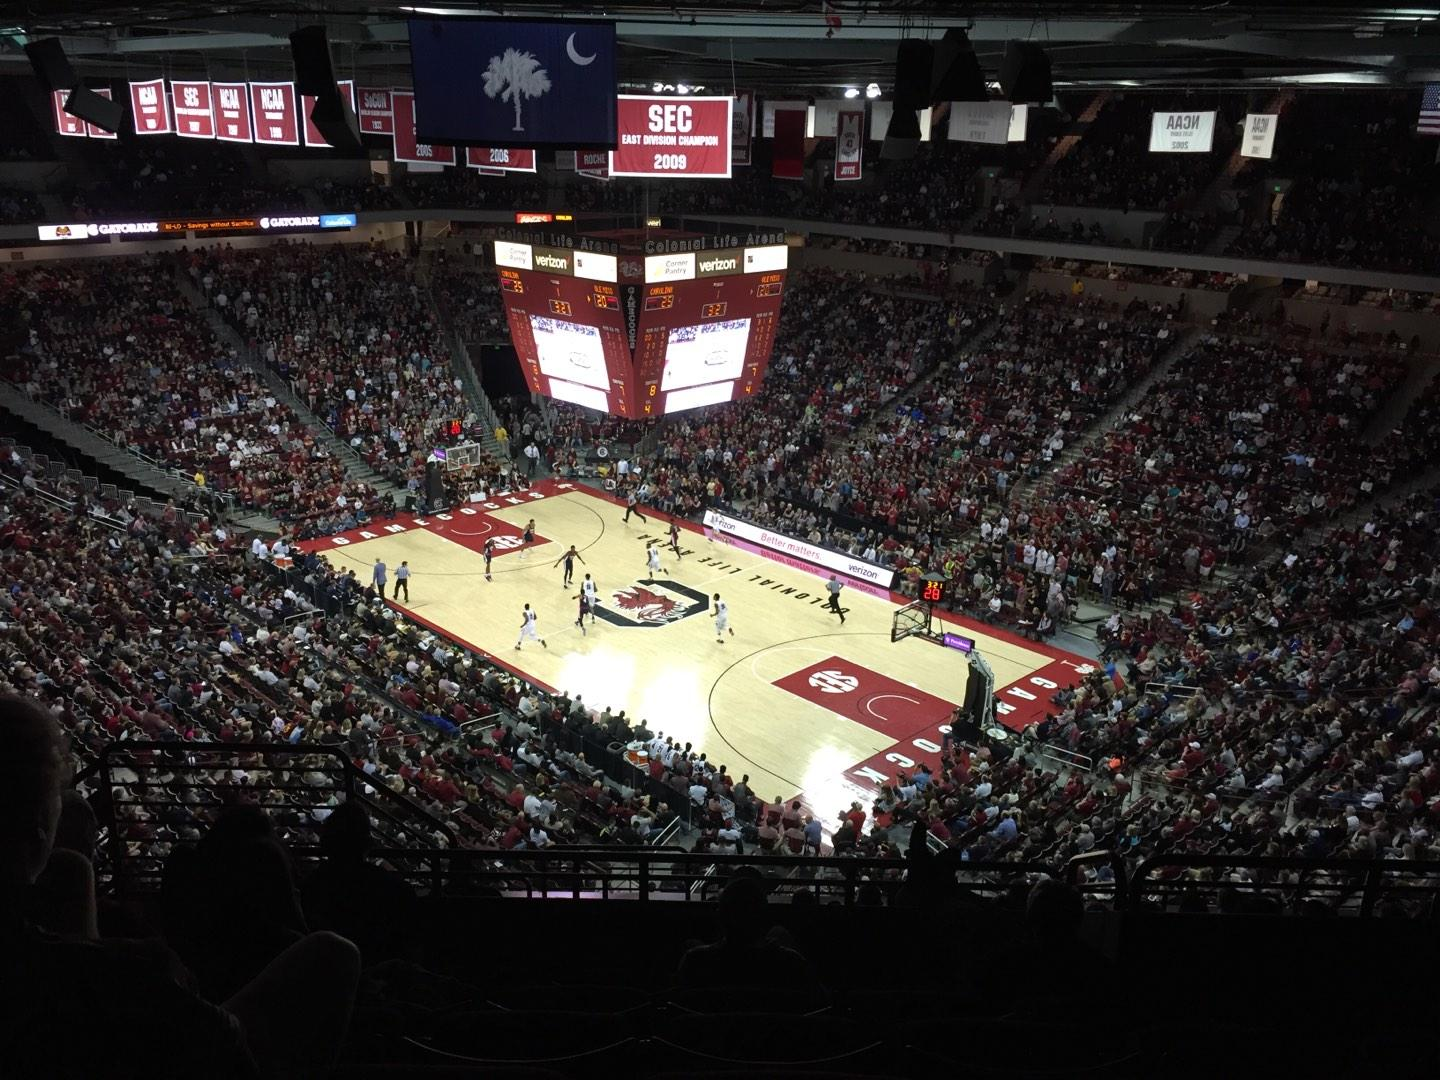 Colonial Life Arena Section 204 Row 11 Seat 14